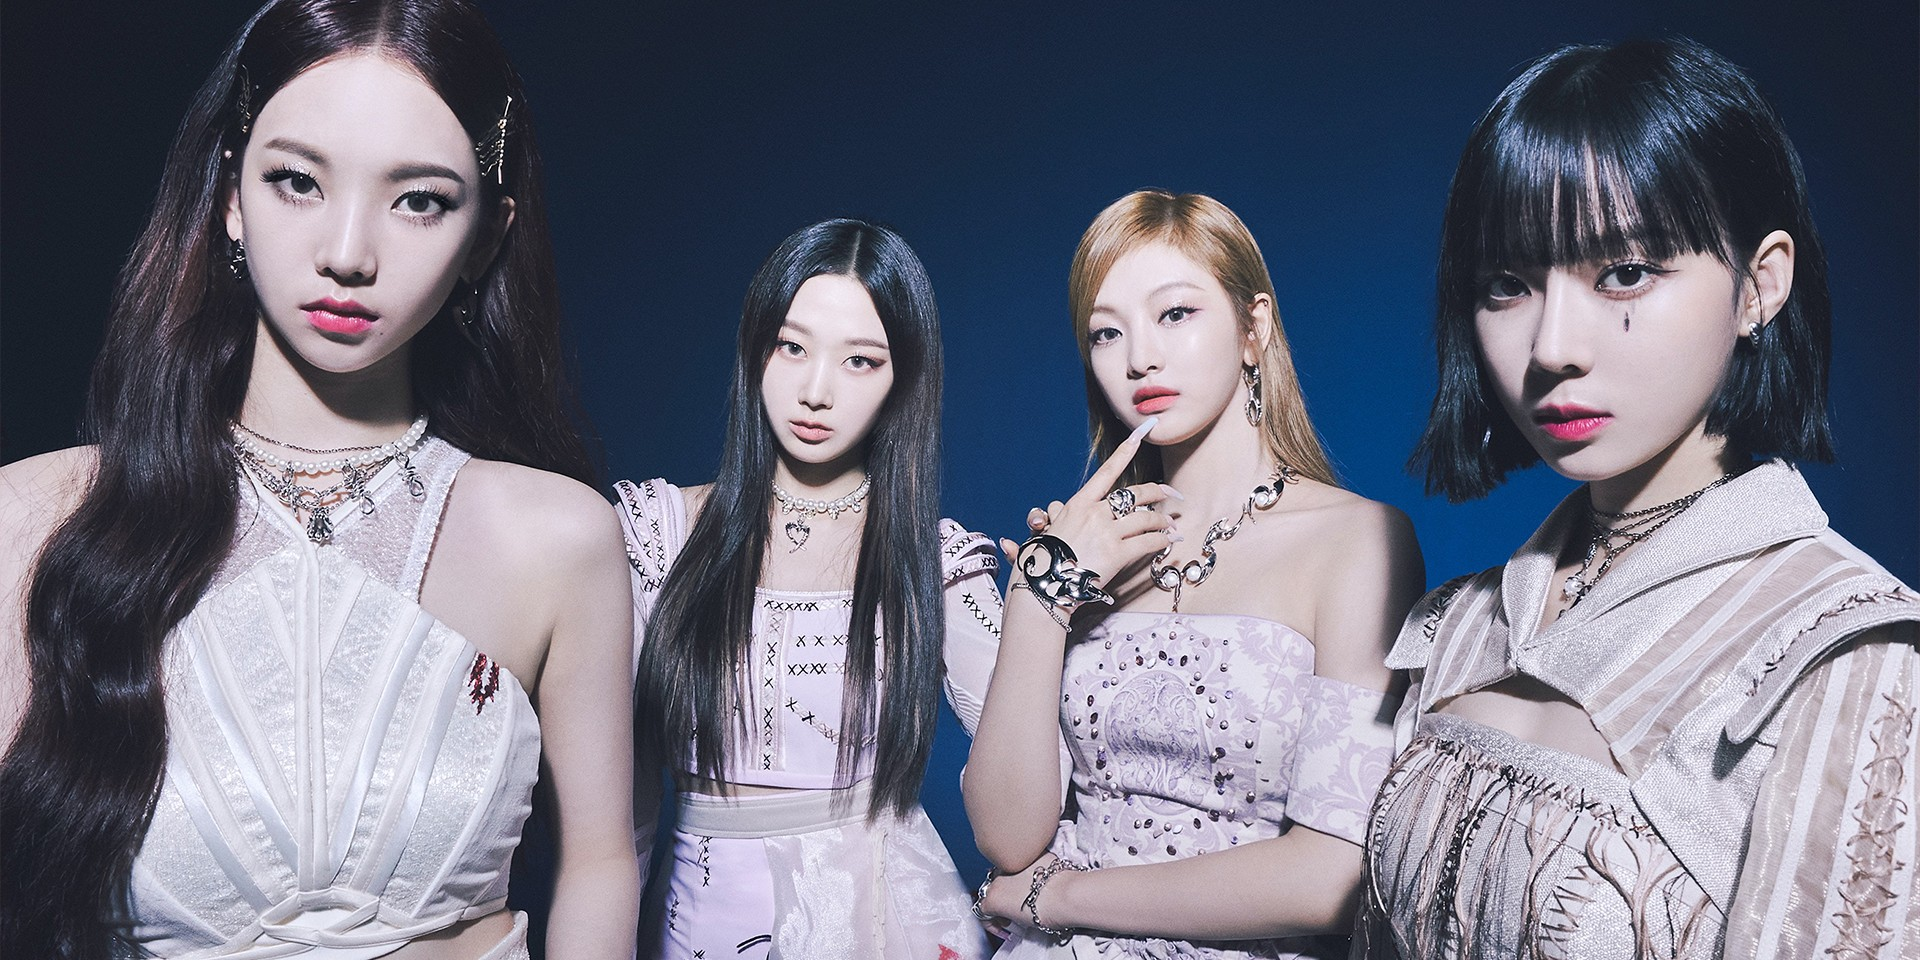 aespa release official tracklist for upcoming mini-album 'Savage',